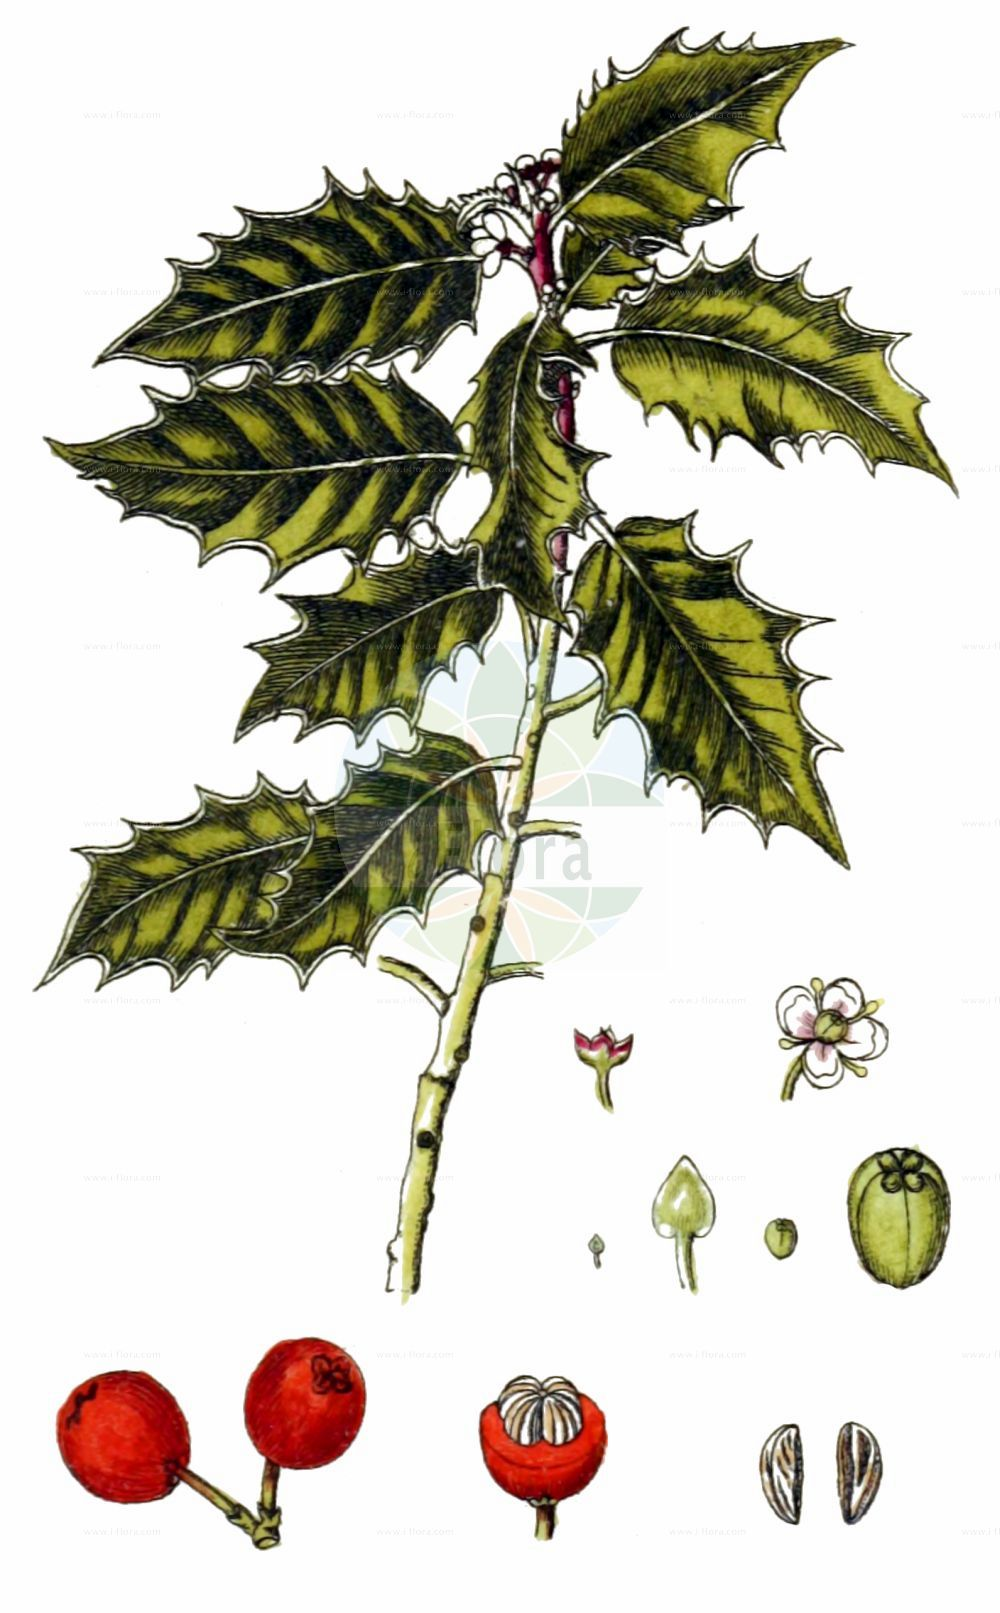 Historische Abbildung von Ilex aquifolium (Europaeische Stechpalme - Holly). Das Bild zeigt Blatt, Bluete, Frucht und Same. ---- Historical Drawing of Ilex aquifolium (Europaeische Stechpalme - Holly).The image is showing leaf, flower, fruit and seed.(Ilex aquifolium,Europaeische Stechpalme,Holly,Aquifolium ilex,Ilex aquifolium,Ilex balearica,Europaeische Stechpalme,Gewoehnliche Stechpalme,Huelse,Holly,European Holly,Common Holly,English Holly,Variegated Holly,Ilex,Stechpalme,Holly,Aquifoliaceae,Stechpalmengewaechse,Holly family,Blatt,Bluete,Frucht,Same,leaf,flower,fruit,seed,Sturm (1796f))